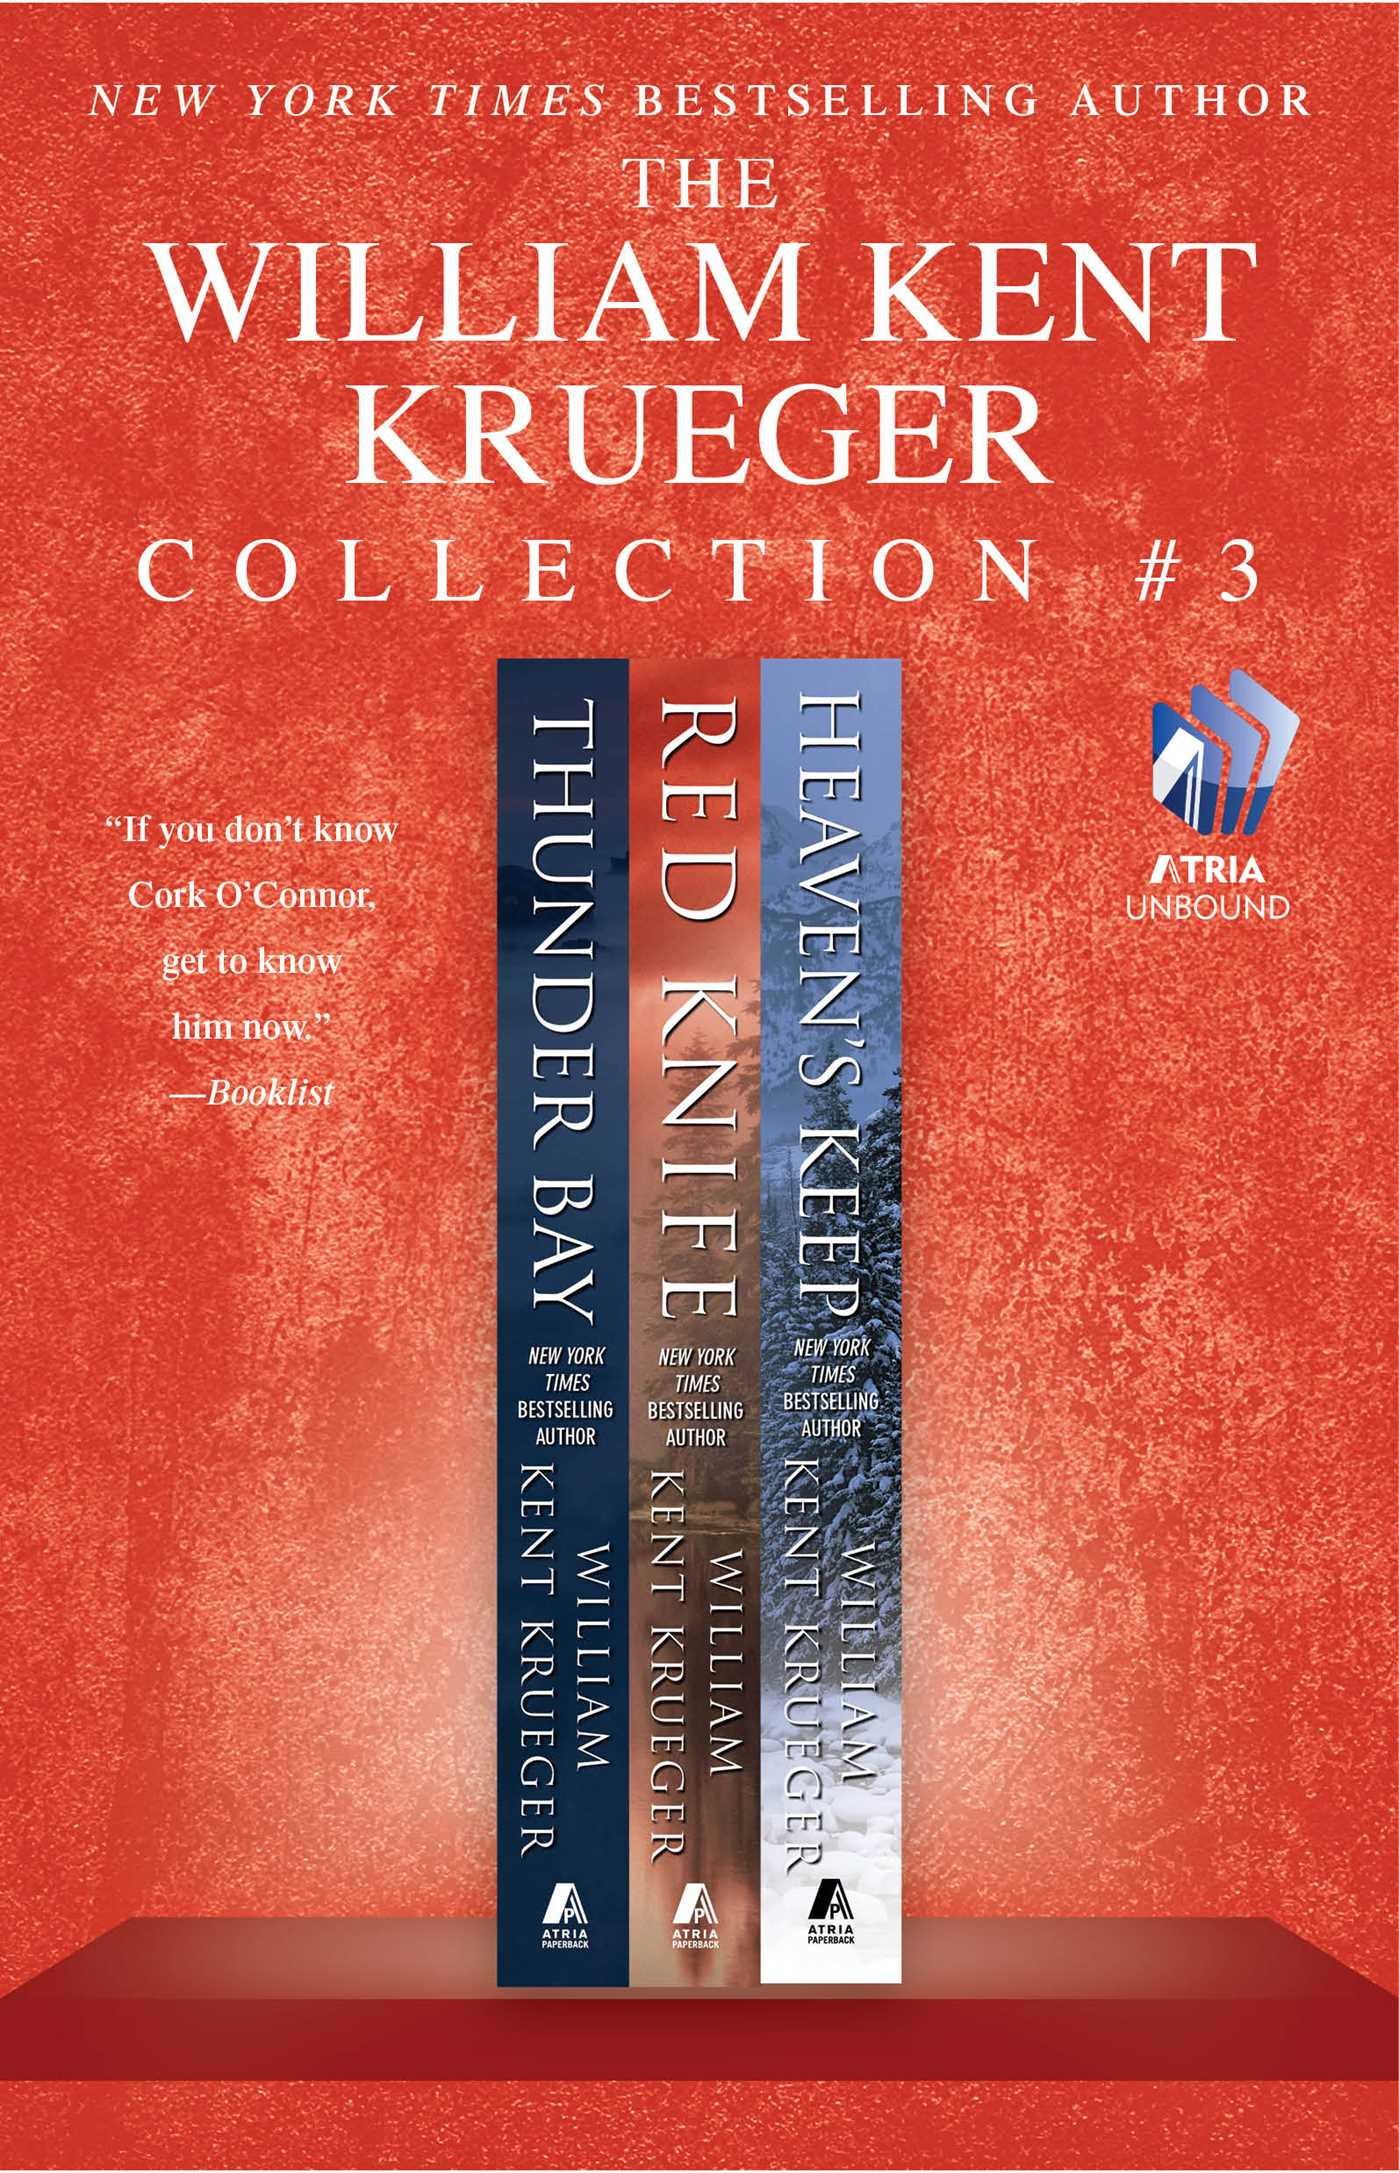 The-william-kent-krueger-collection-3-9781451691108_hr